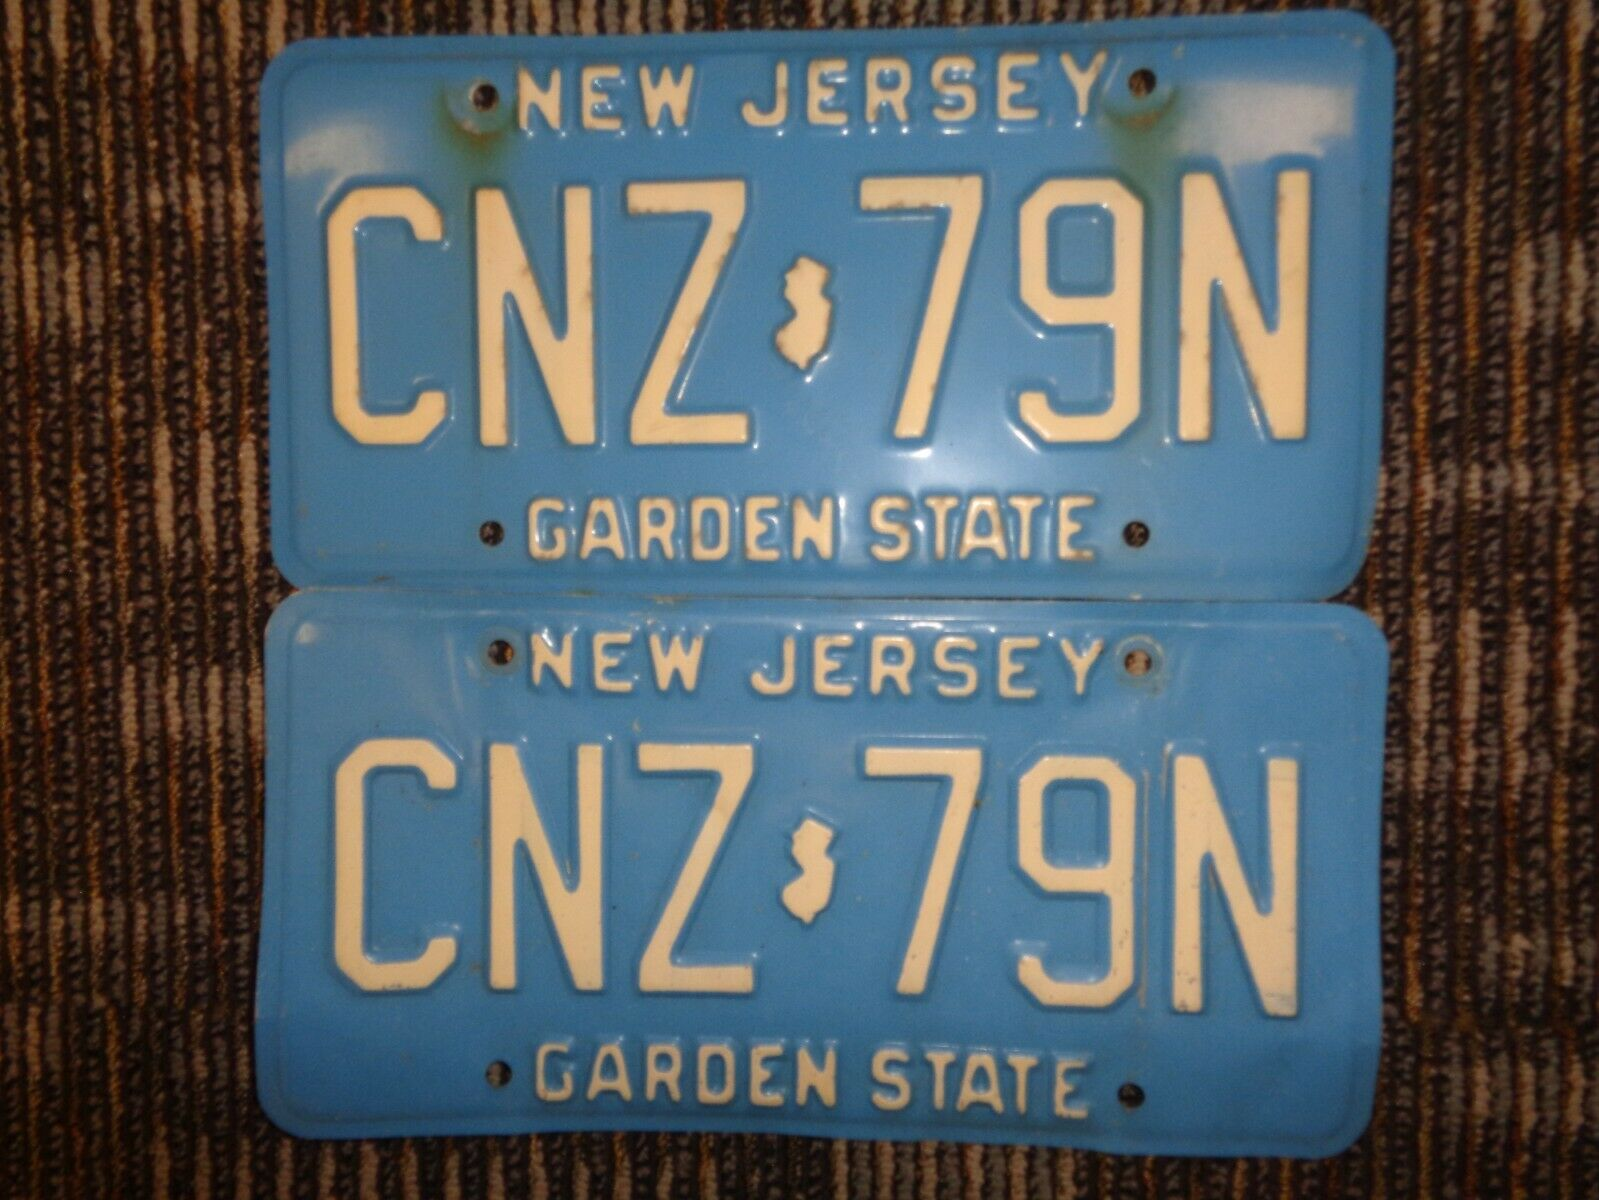 LOT 2-1979 NEW JERSEY THE GARDEN STATE BABY BLUE LICENSE CAR PLATES CNZ-79N  - $4.74